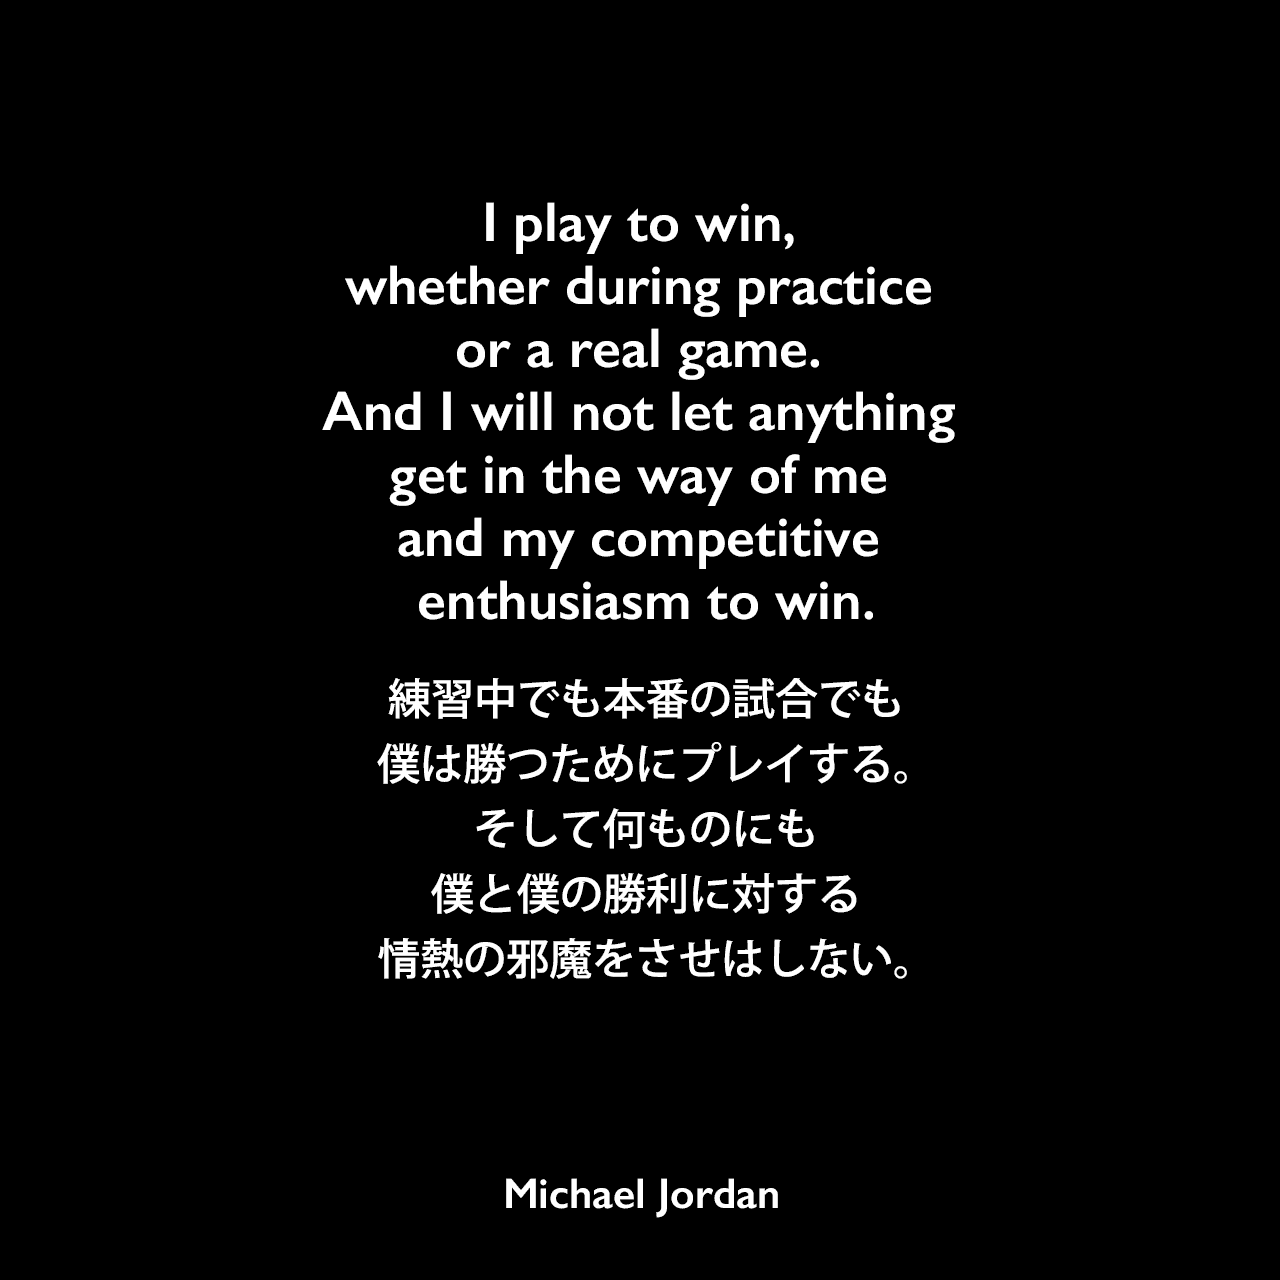 I play to win, whether during practice or a real game. And I will not let anything get in the way of me and my competitive enthusiasm to win.練習中でも本番の試合でも、僕は勝つためにプレイする。そして何ものにも、僕と僕の勝利に対する情熱の邪魔をさせはしない。Michael Jordan